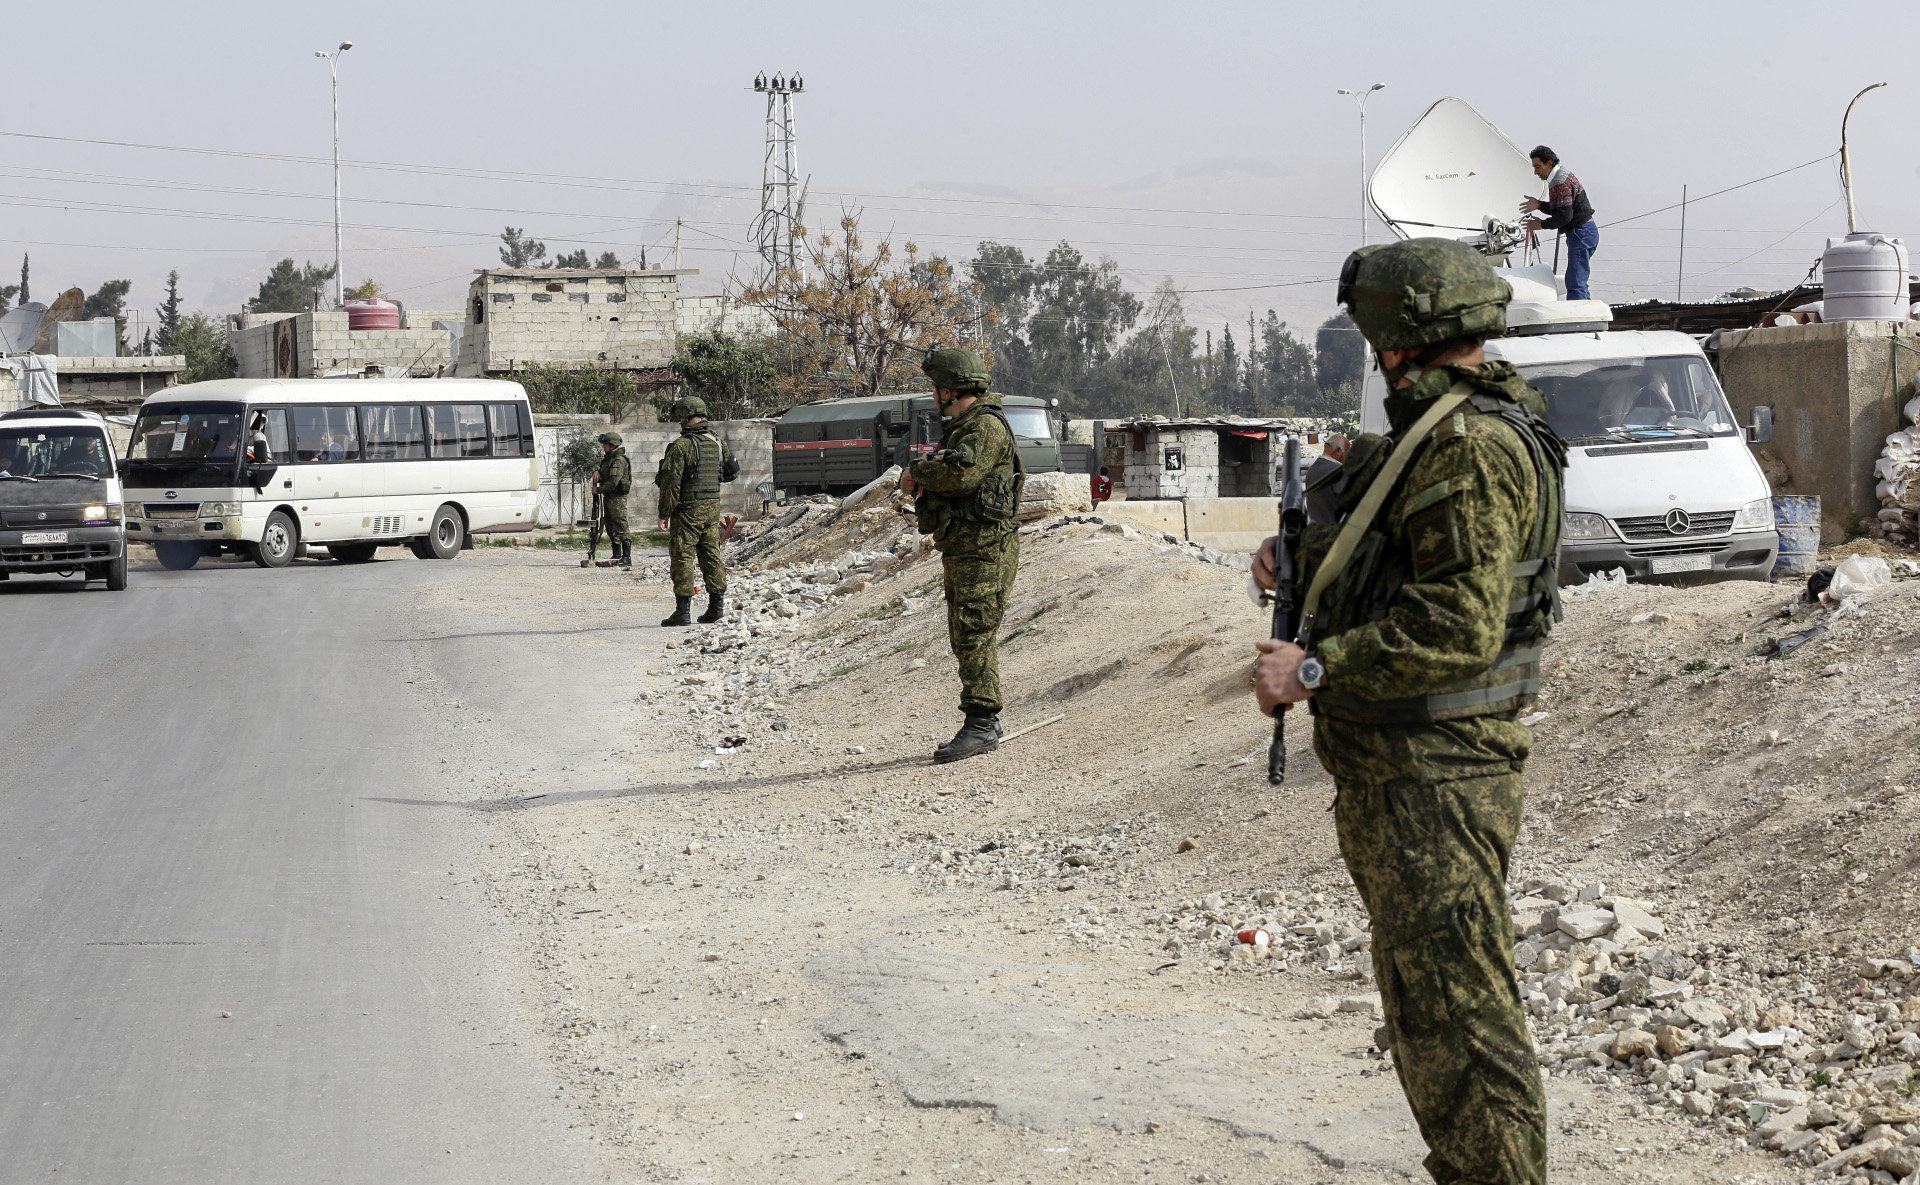 Russian military police members stand guard at the Wafideen checkpoint on the outskirts of the Syrian capital Damascus neighbouring the rebel-held Eastern Ghouta enclave on March 13, 2018, awaiting any civilians evacuating from the area